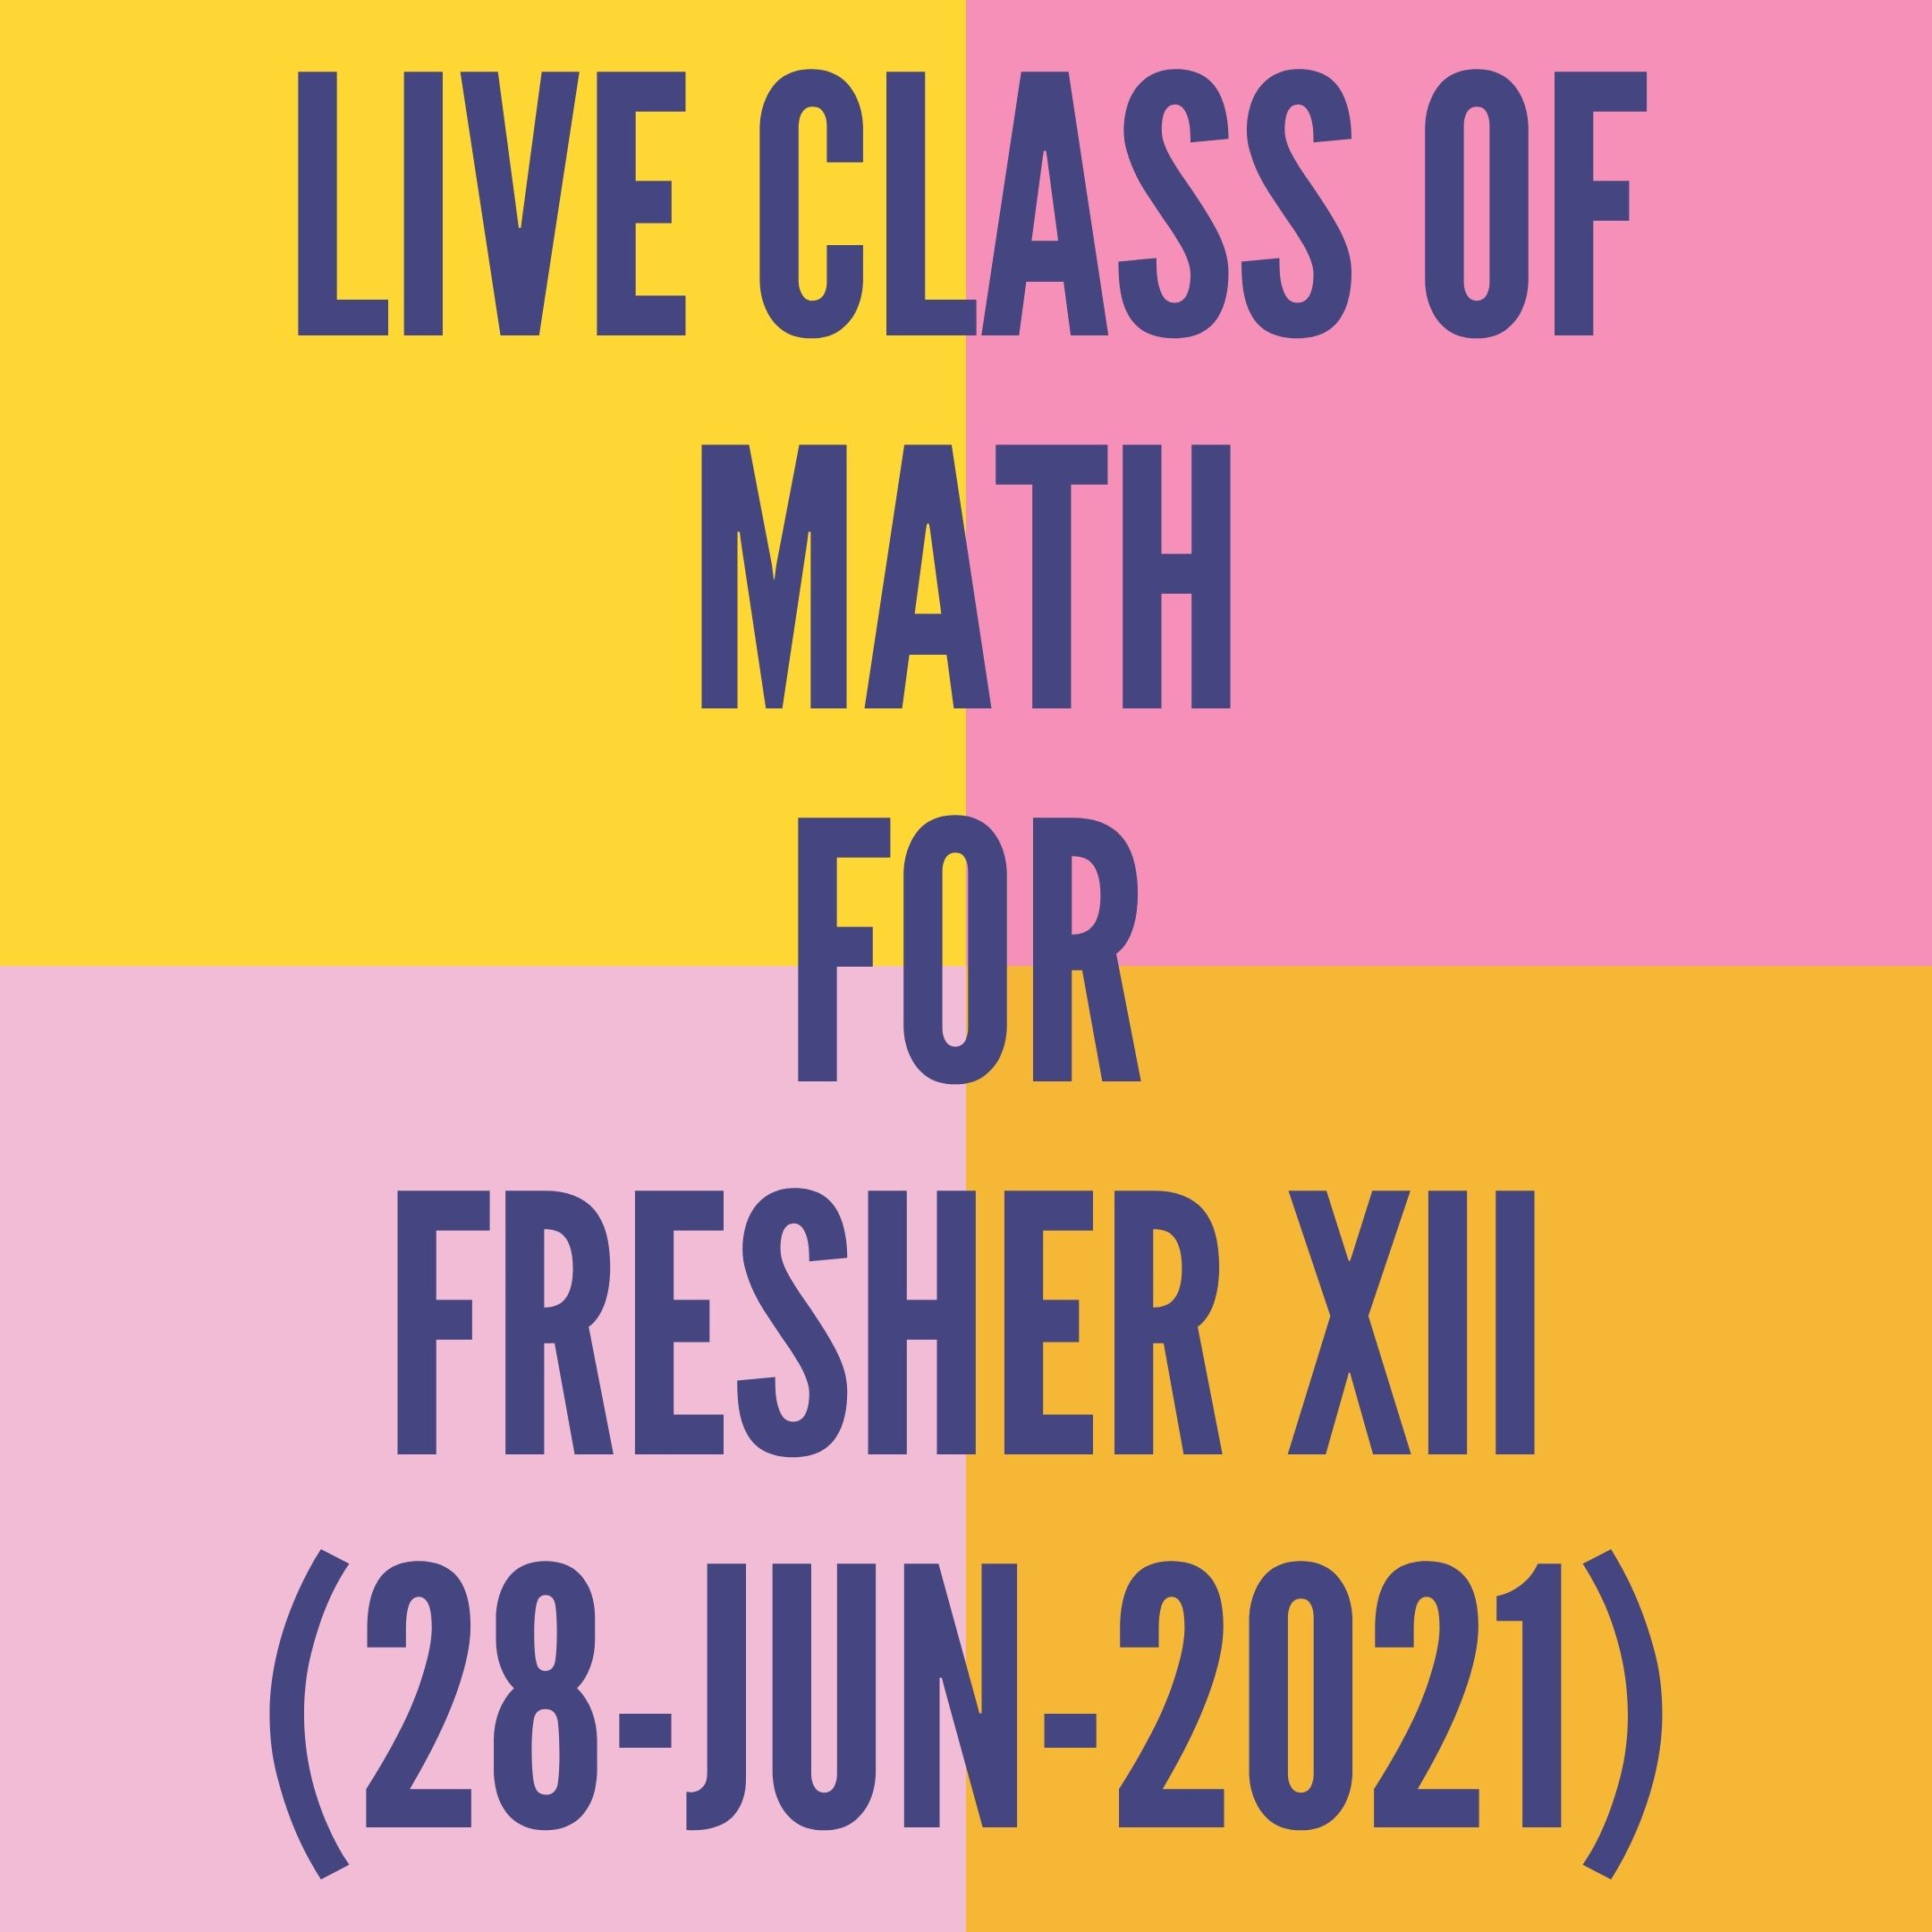 LIVE CLASS OF MATHS FOR FRESHER XII (28-JUN-2021)